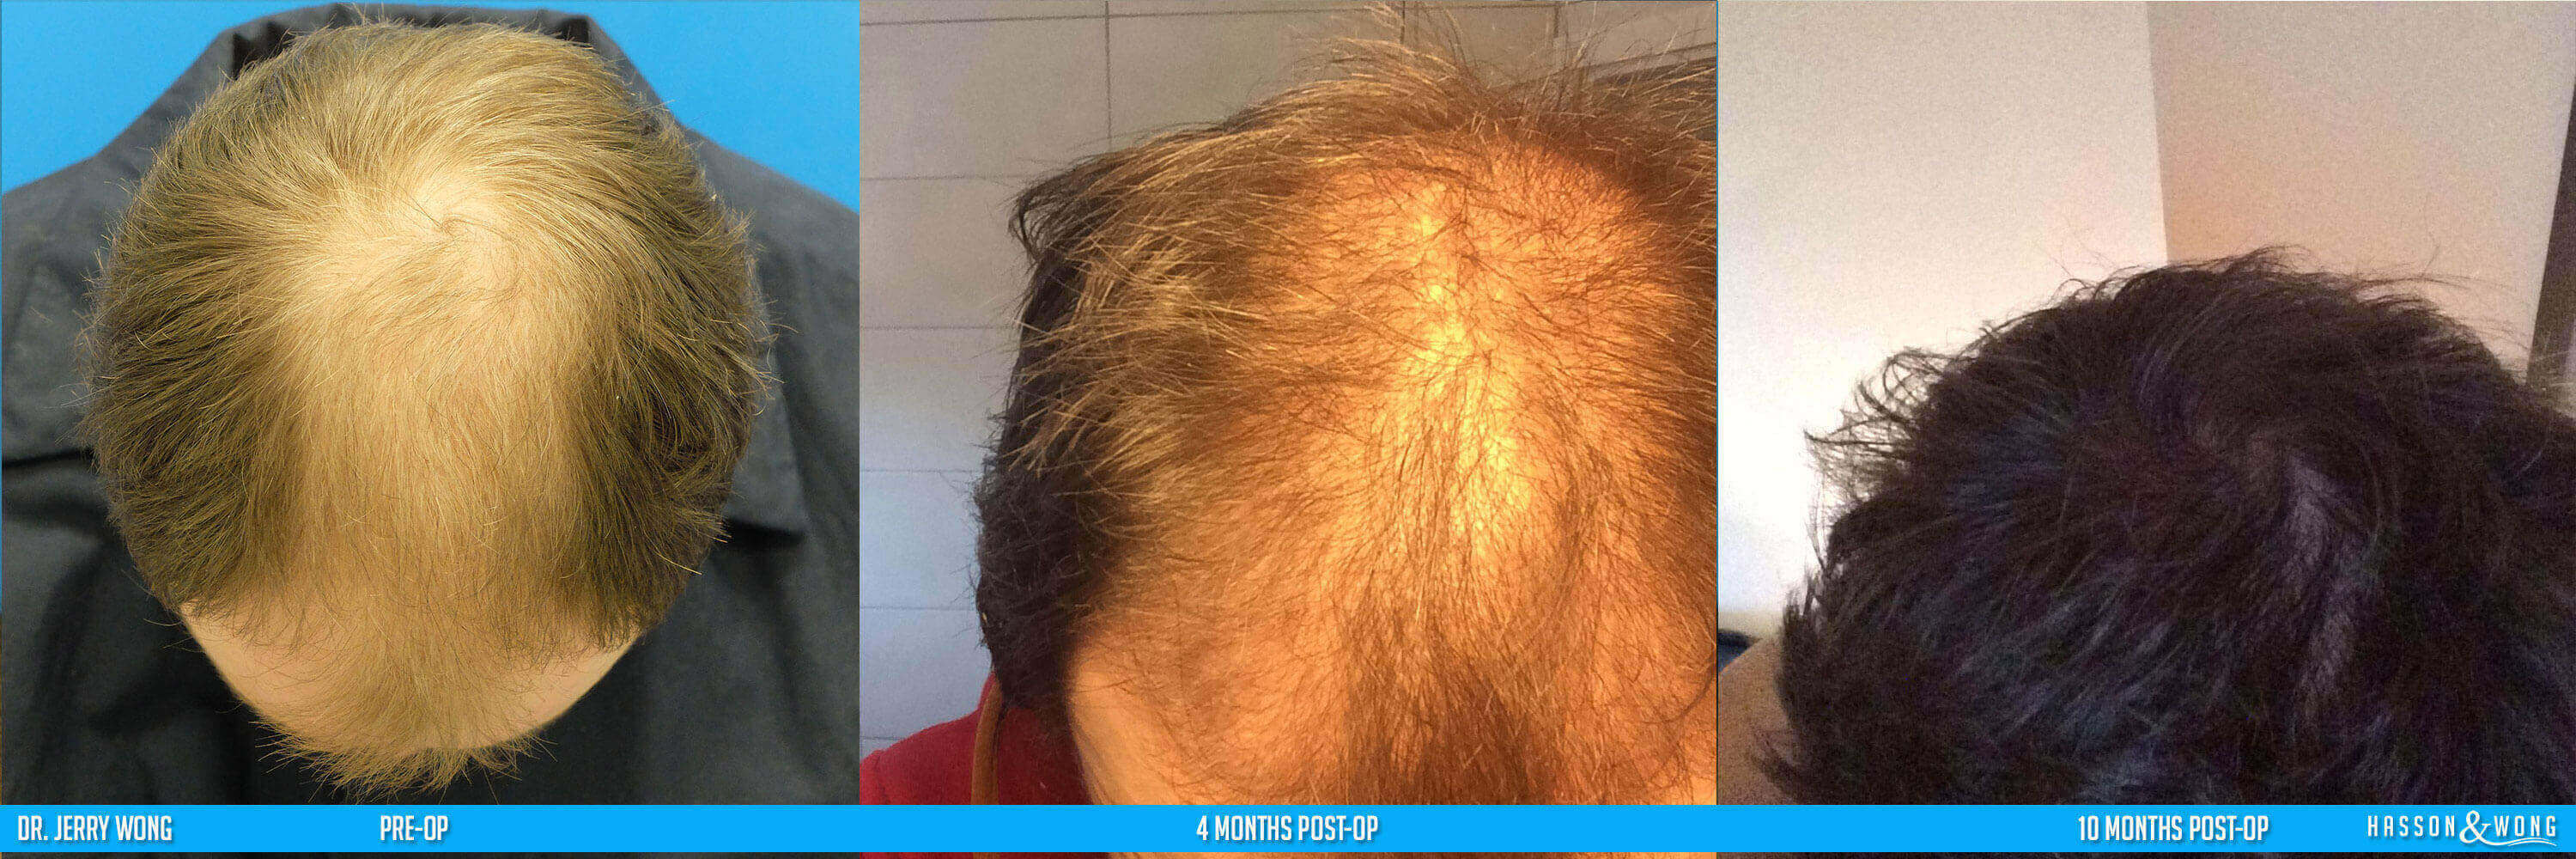 hair transplant patient top view 10 months after surgery